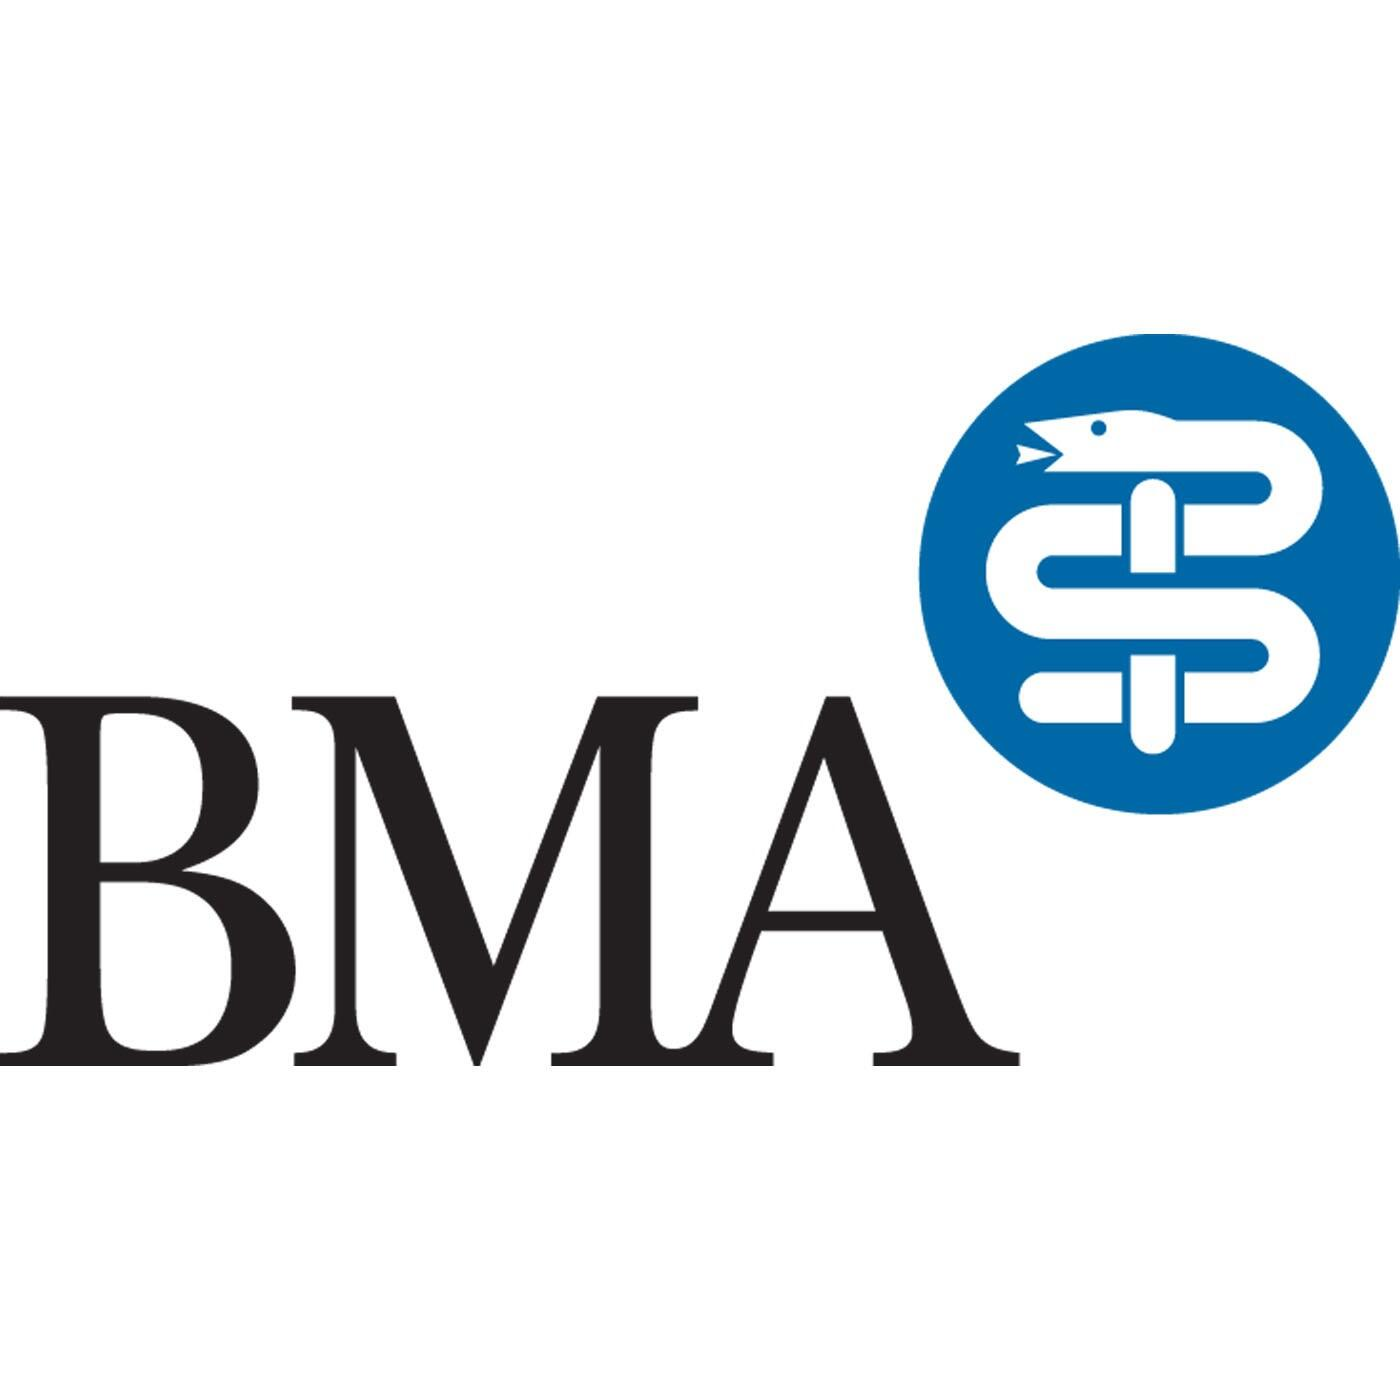 The BMA